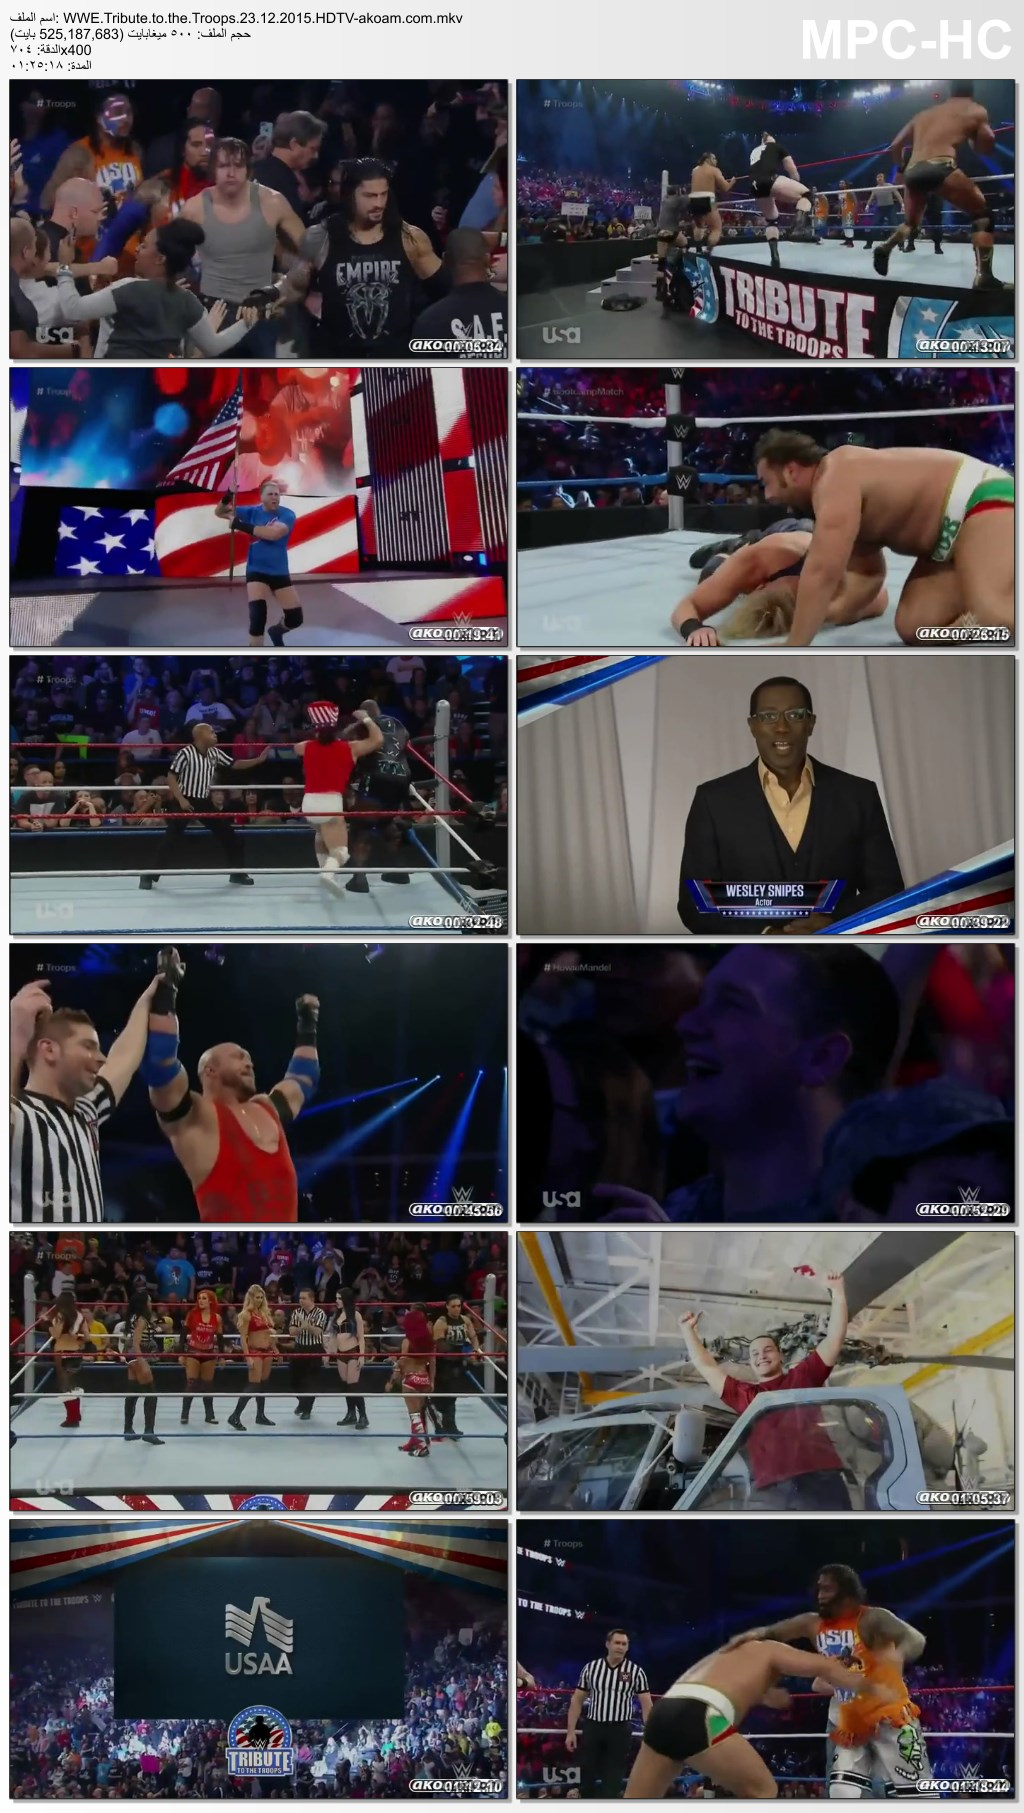 Tribute,Troops,WWE Tribute to the Troops,WWE,te to the Troops,التحية للجنود